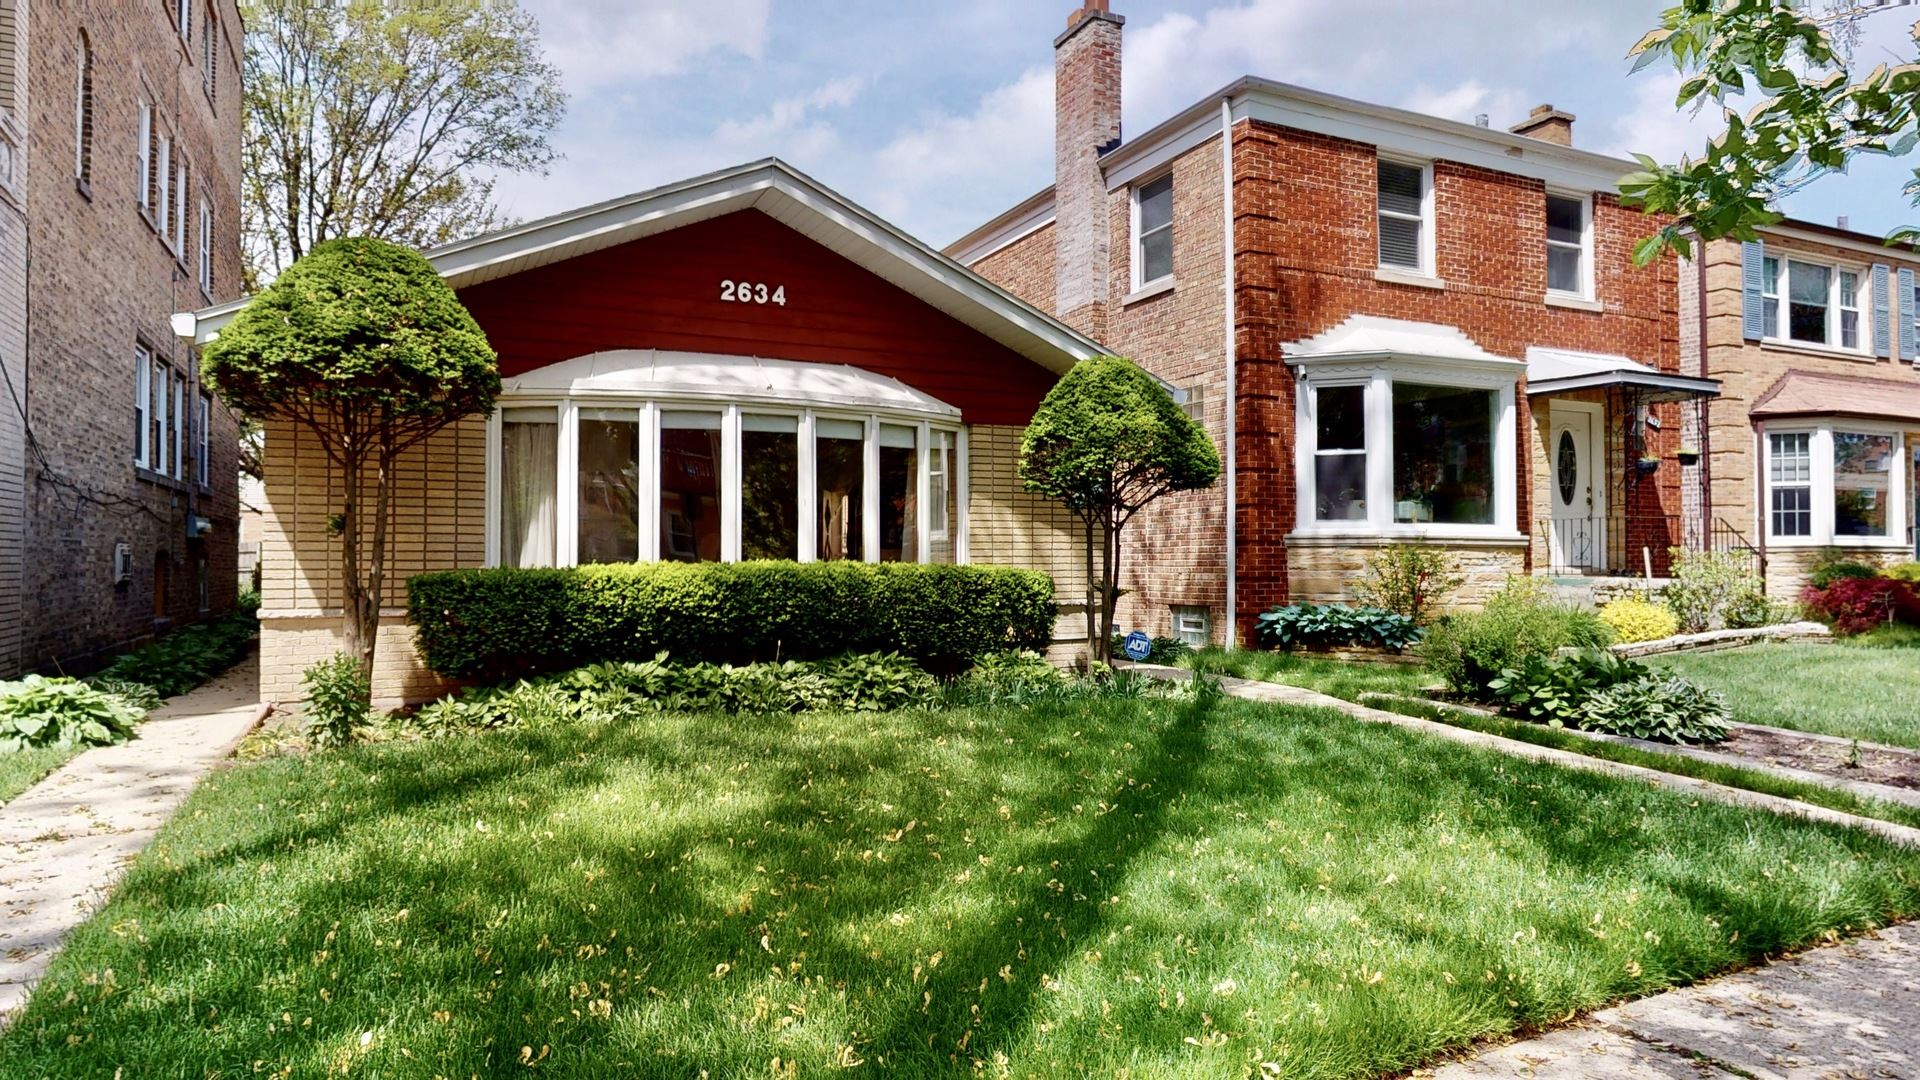 2634 W Fargo Avenue, Chicago, IL 60645 - #: 10788537